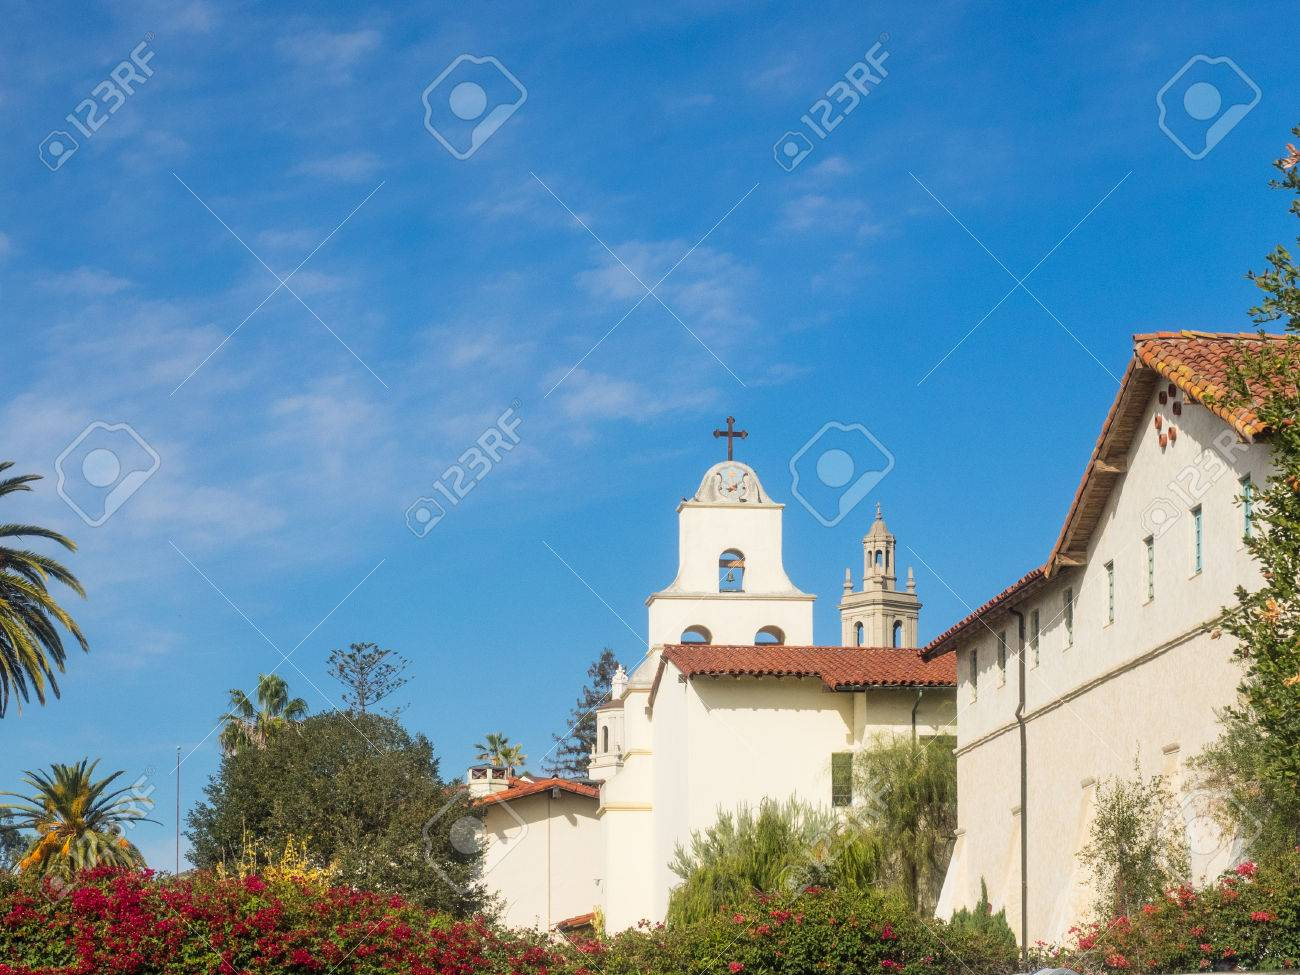 Mission Santa Barbara Is A Spanish Mission Founded By The Franciscan ...